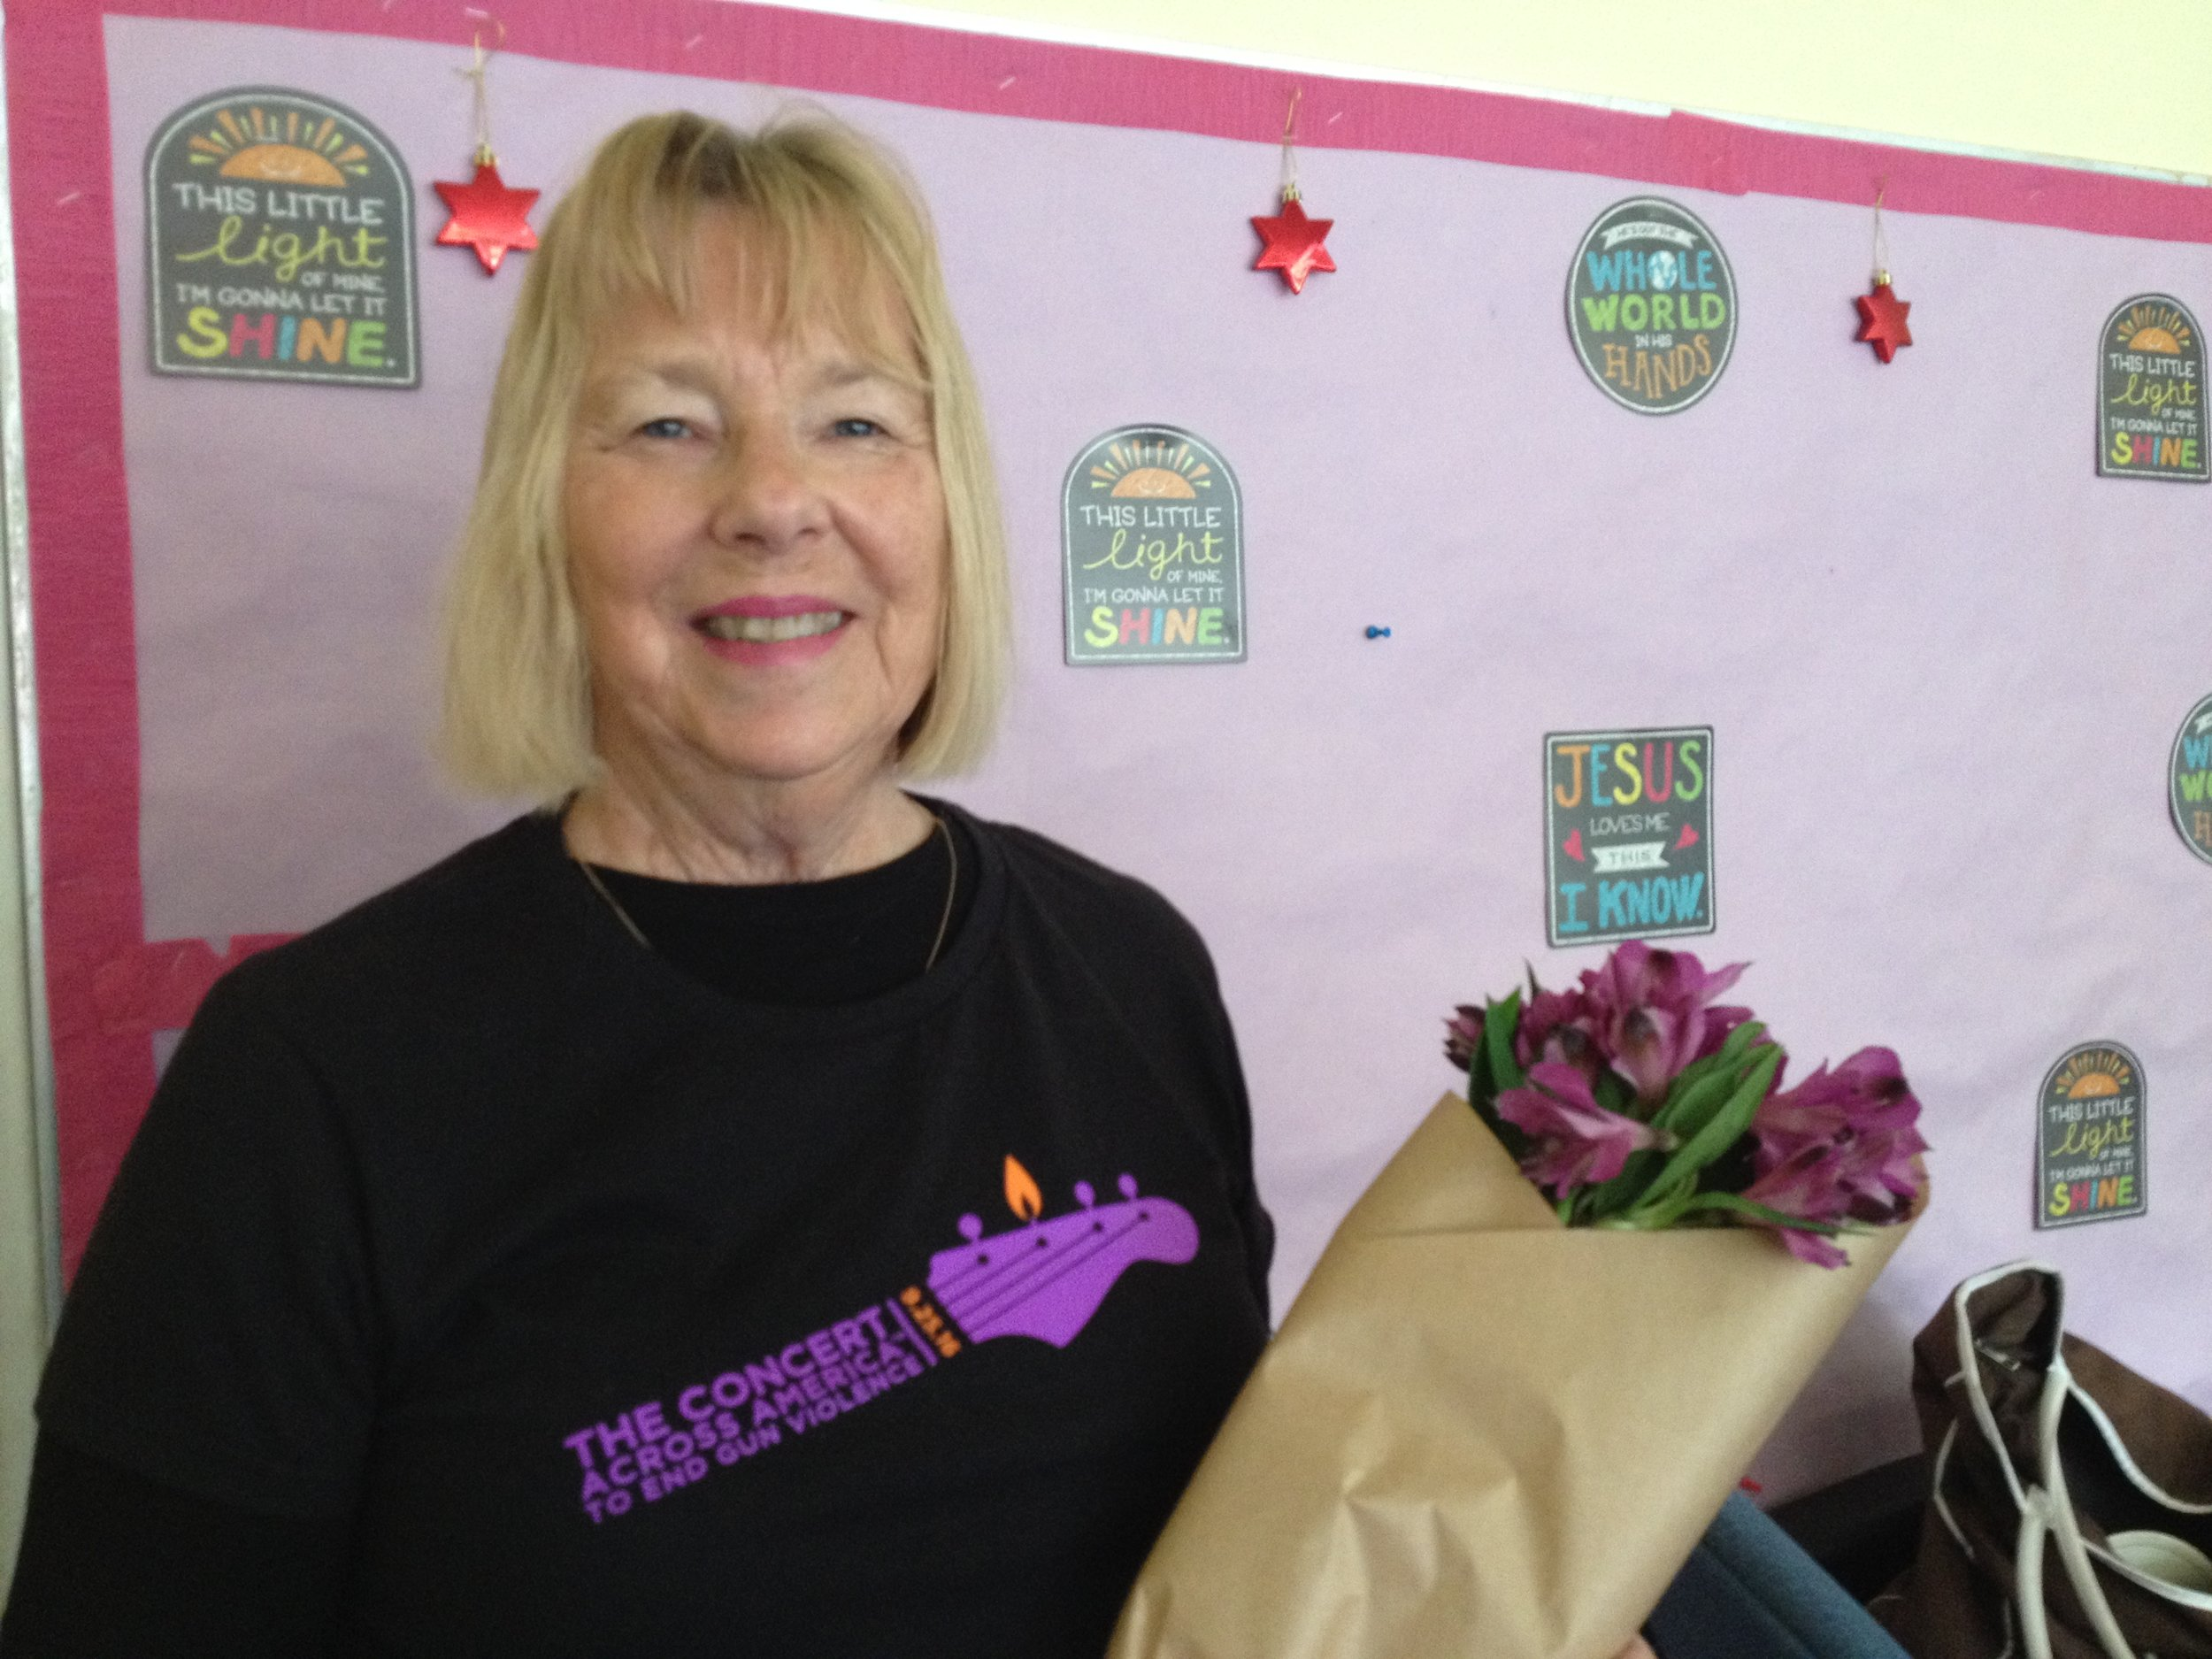 Sharon Friel, Events Co-chair